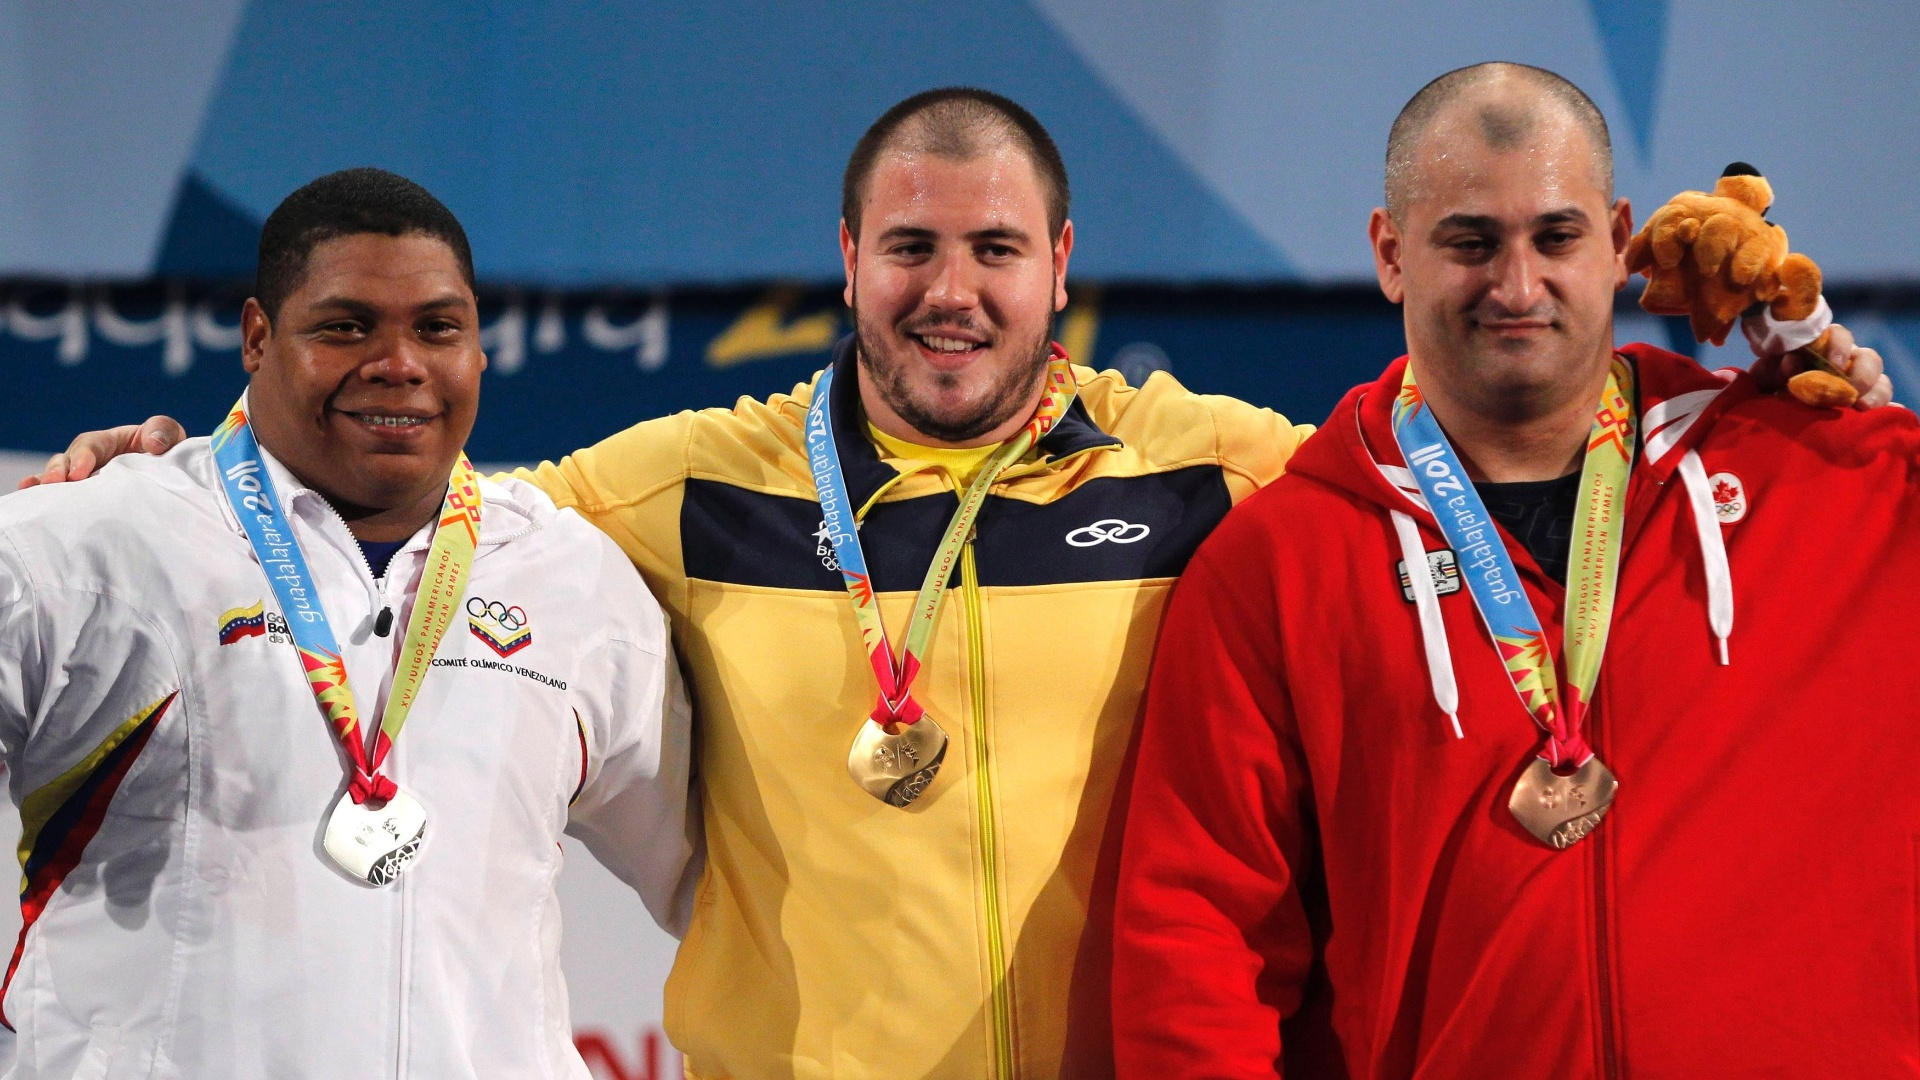 Fernando Saraiva sorri aps receber medalha de ouro na categoria at 105 kg do levantamento de peso (27/10/2011)